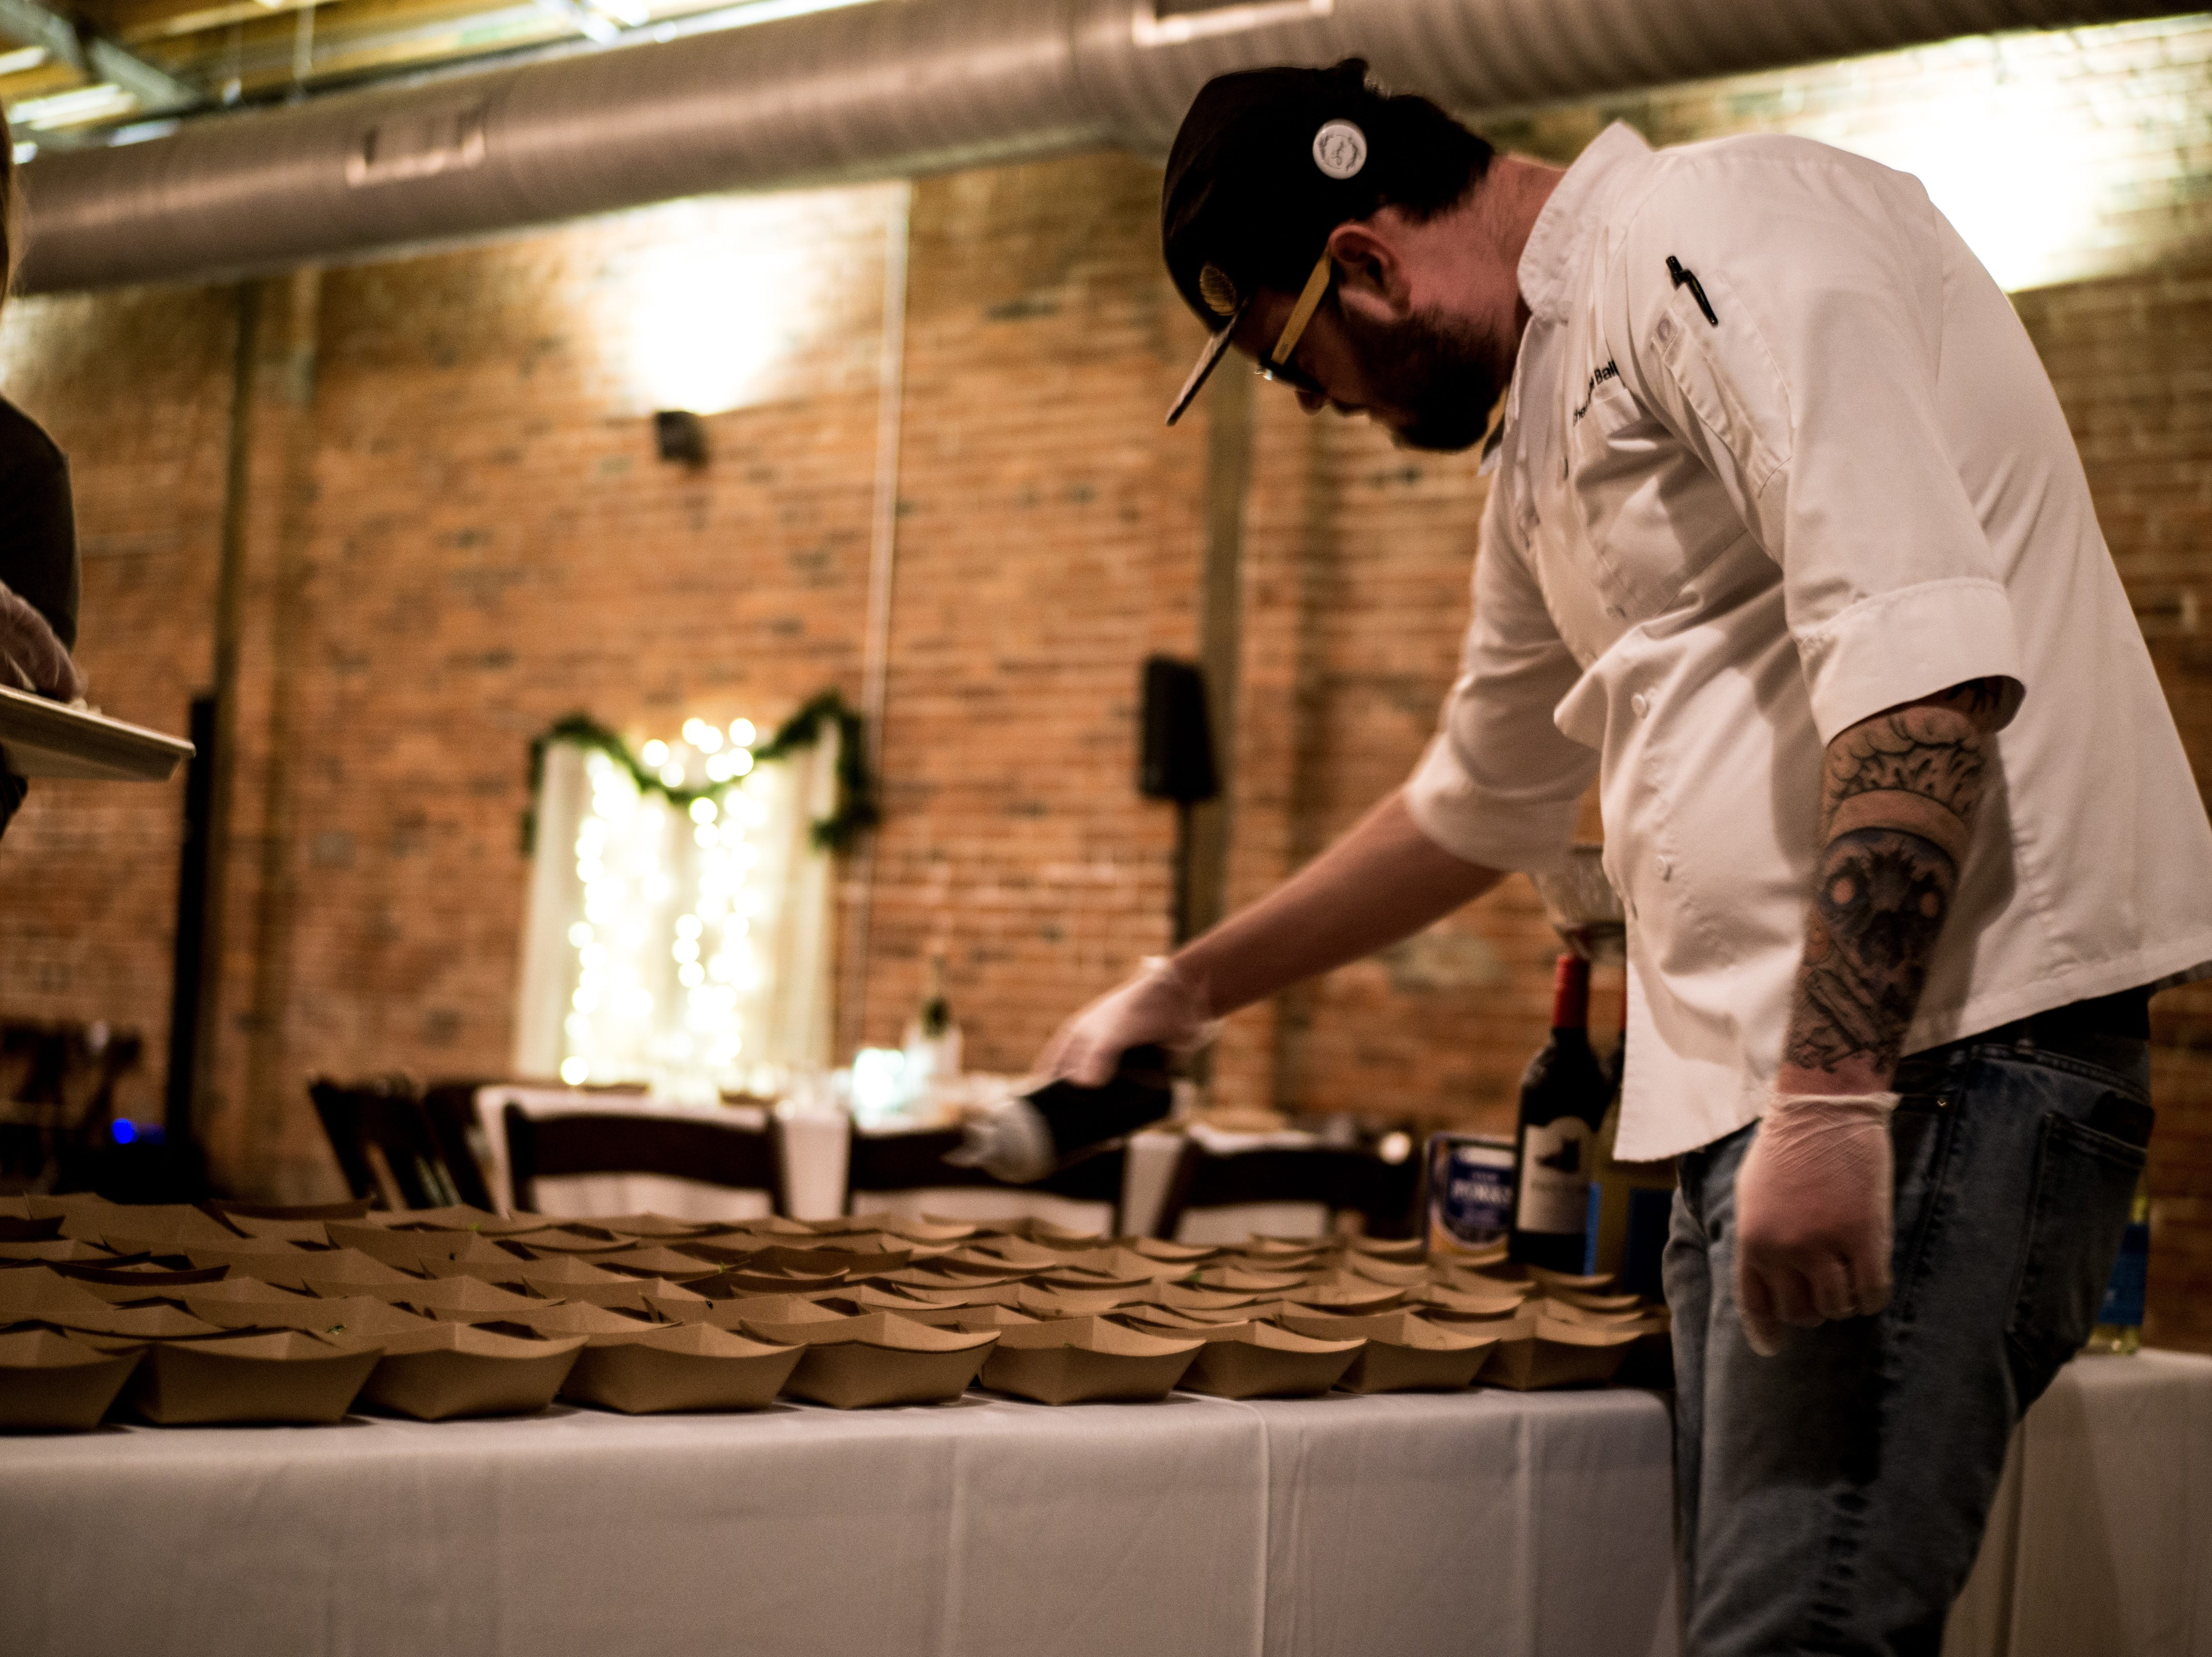 Chef Kendale Ball prepares food at a catering event.